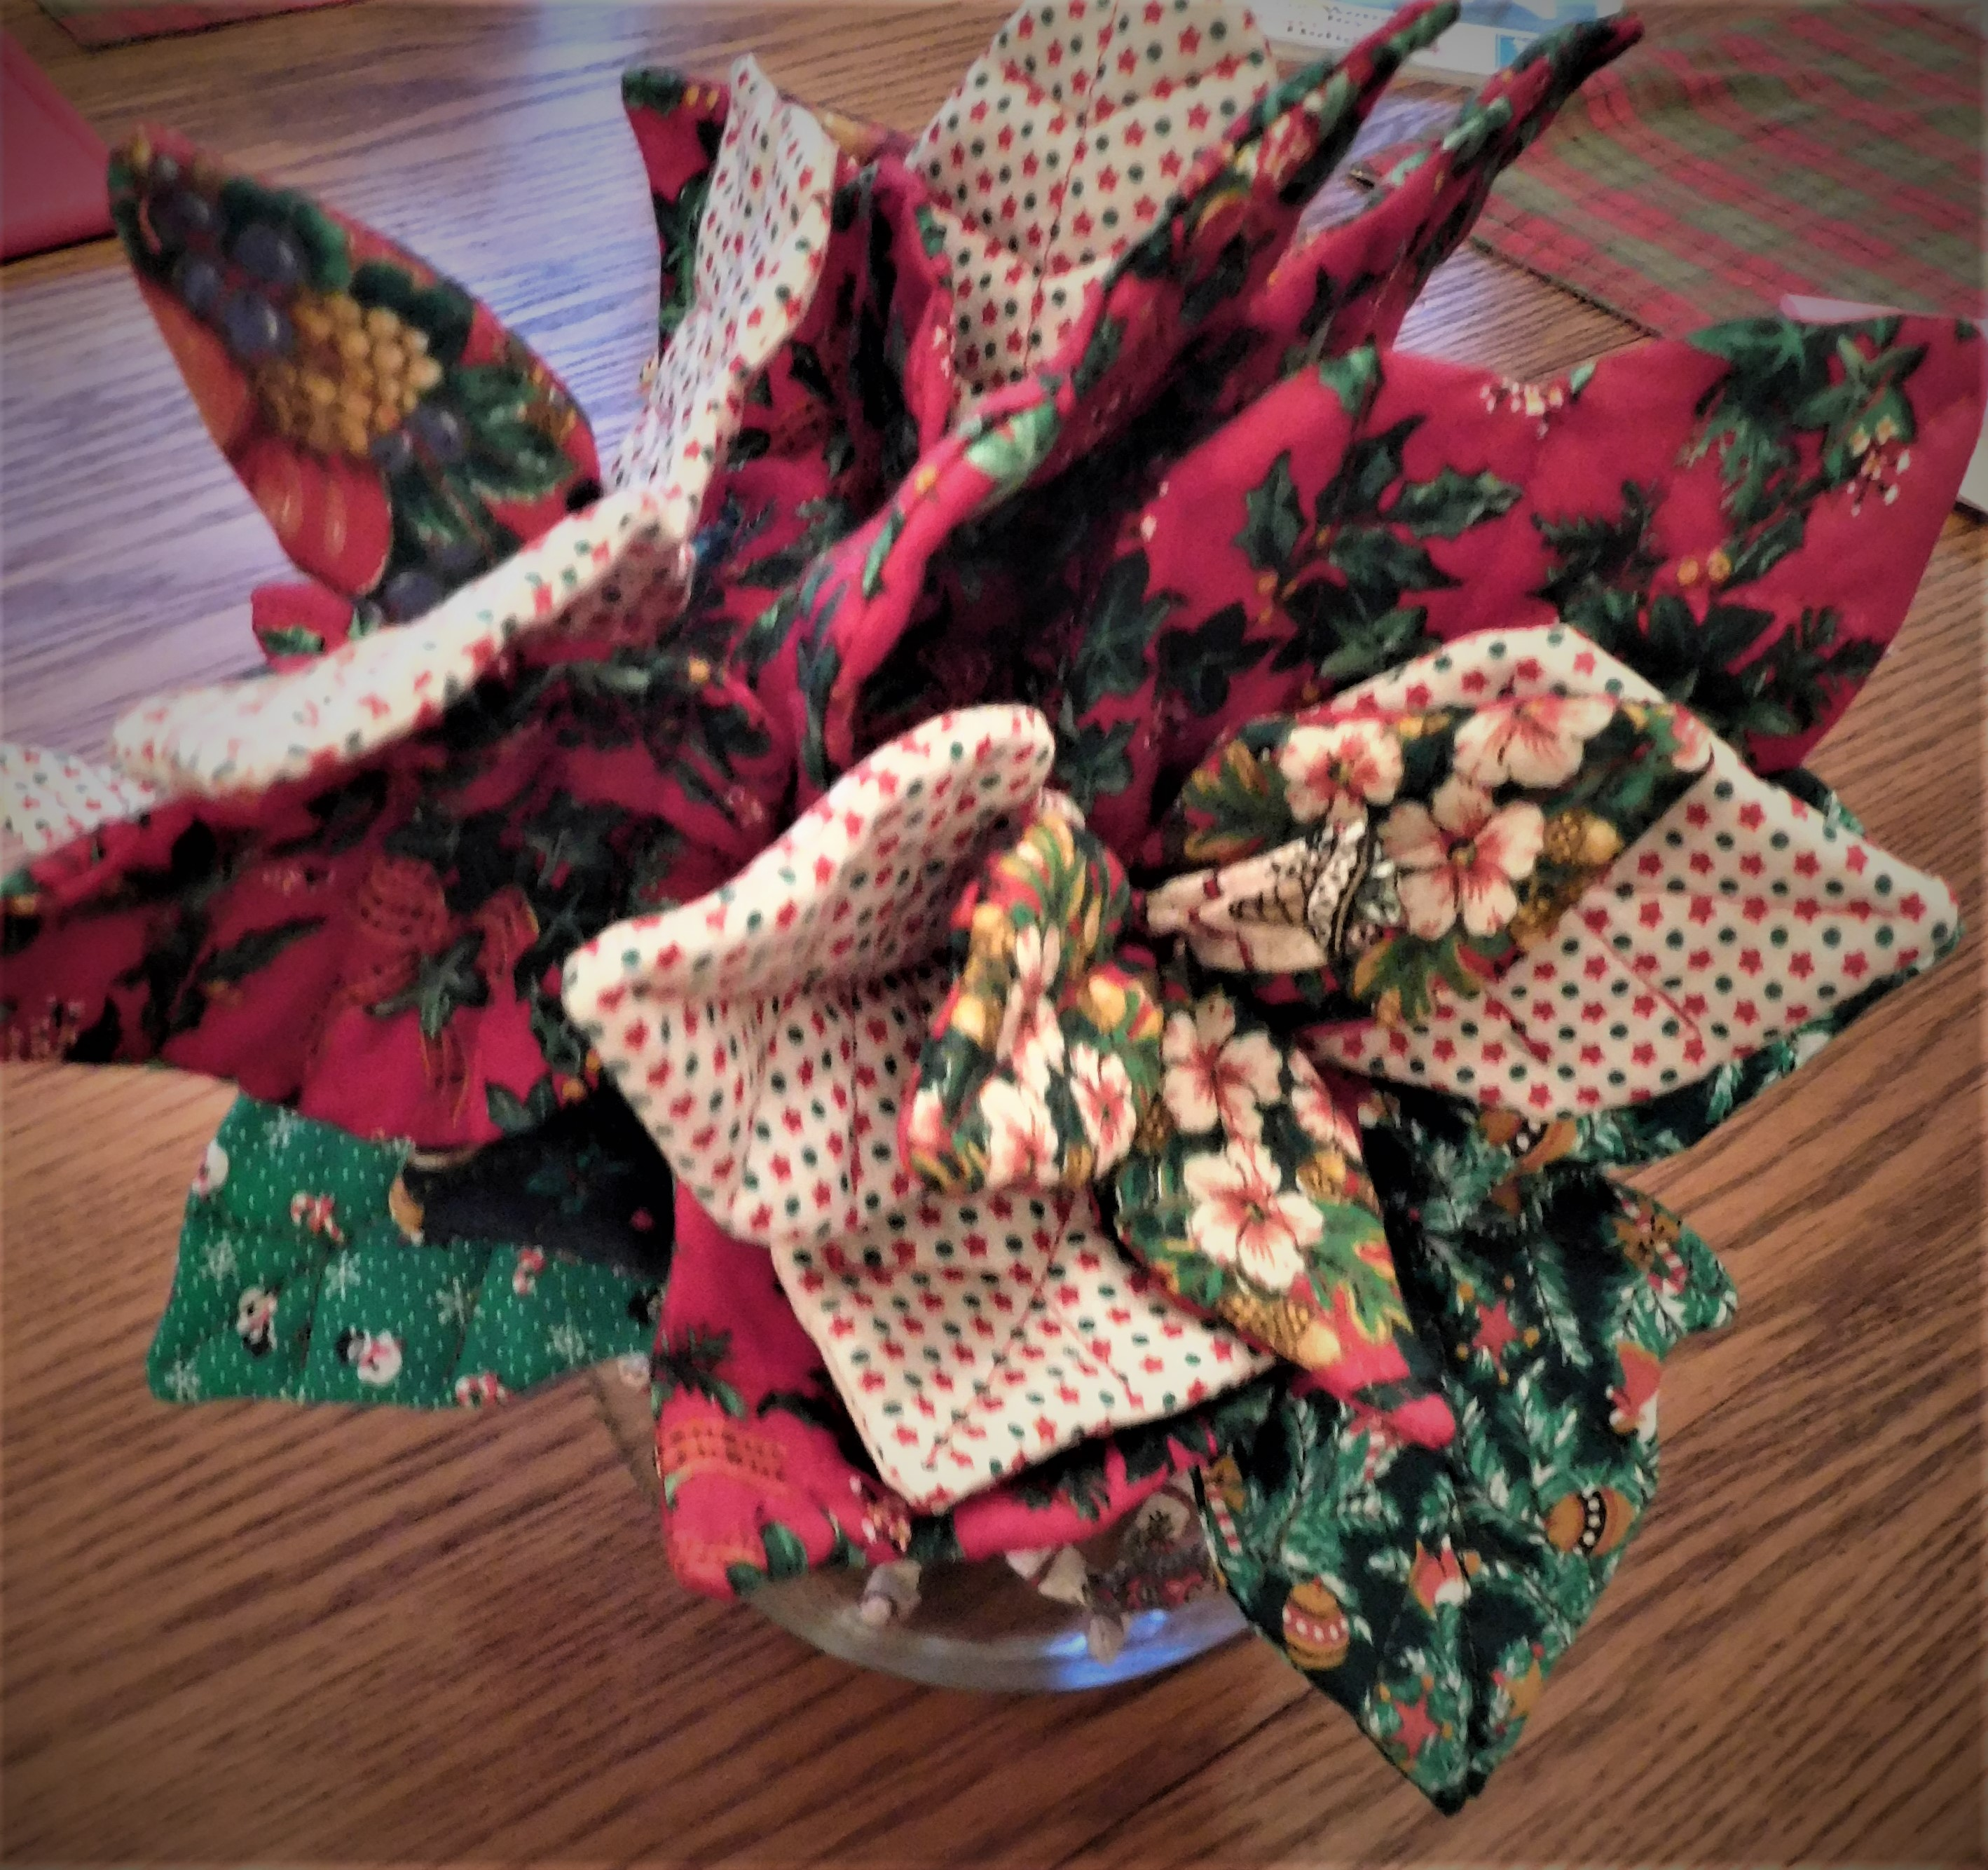 Picture of Fabric Poinsettia Plant